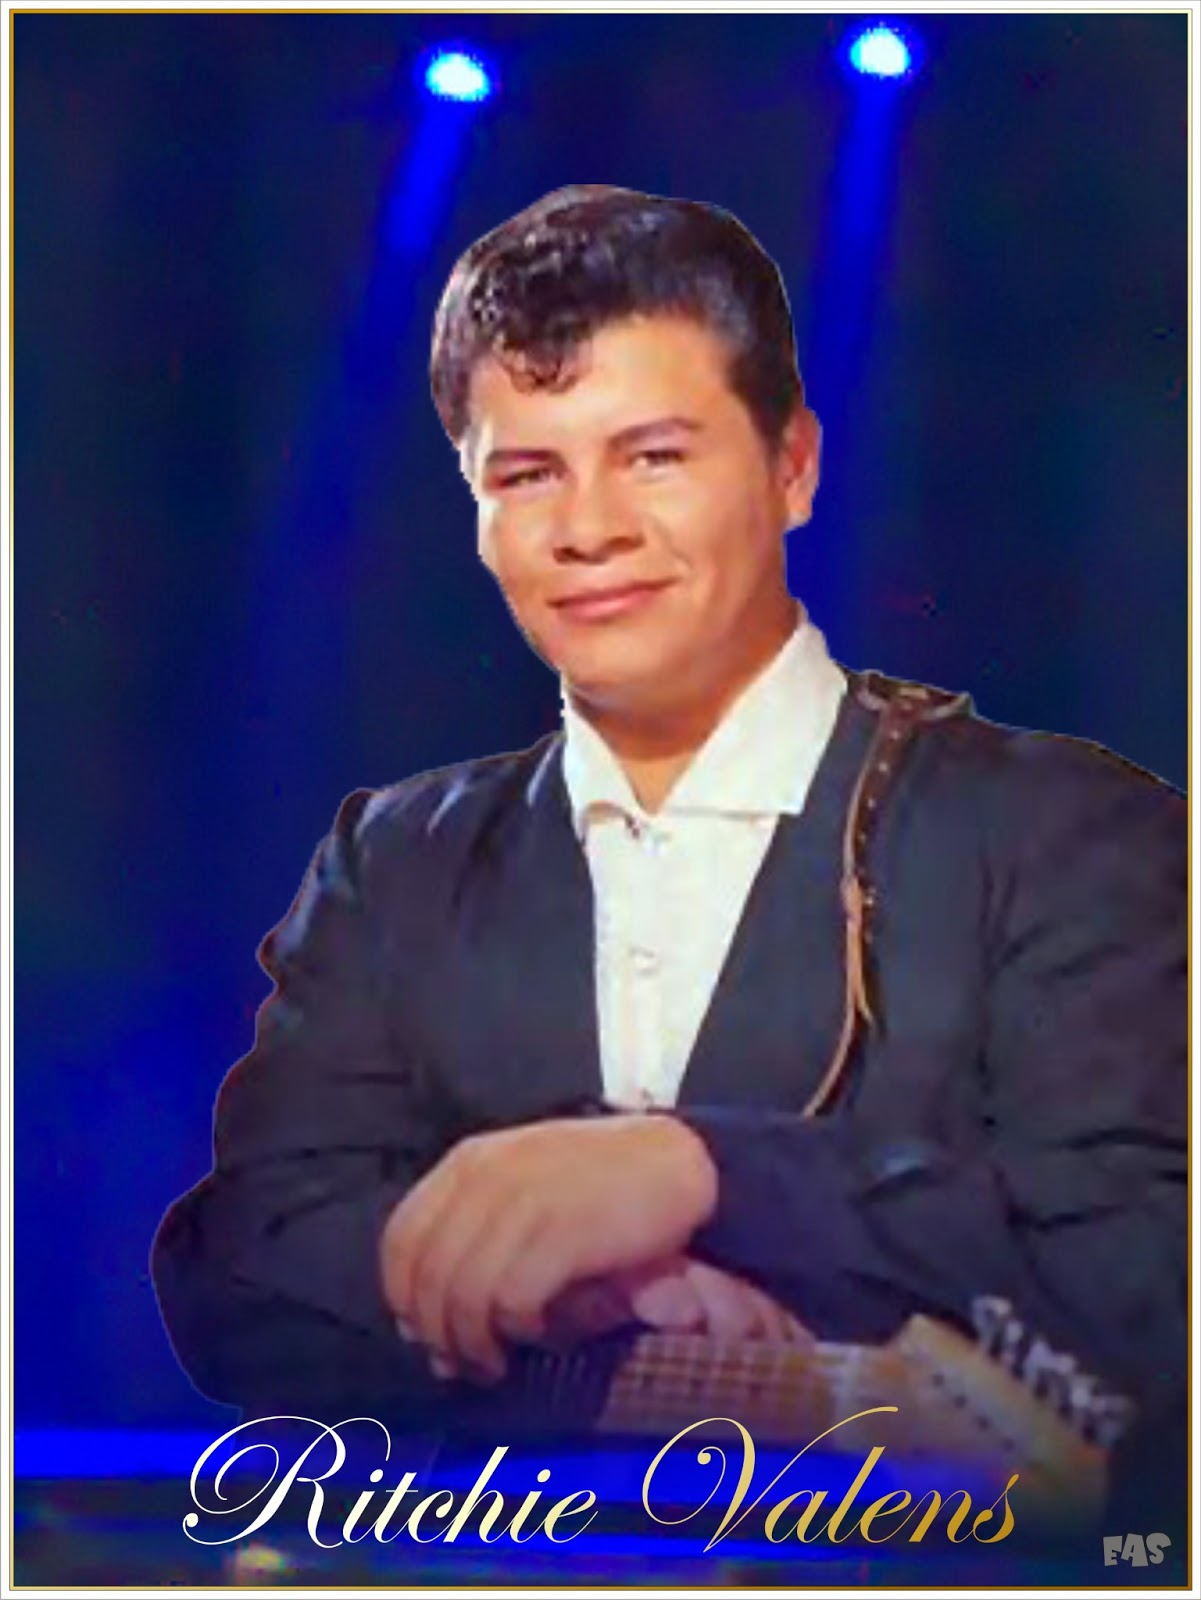 ritchie valen This fantastic song by the late great richie valens was recorded way back in 1958 which was only about 9 months before he died in that tragic plane crash t.